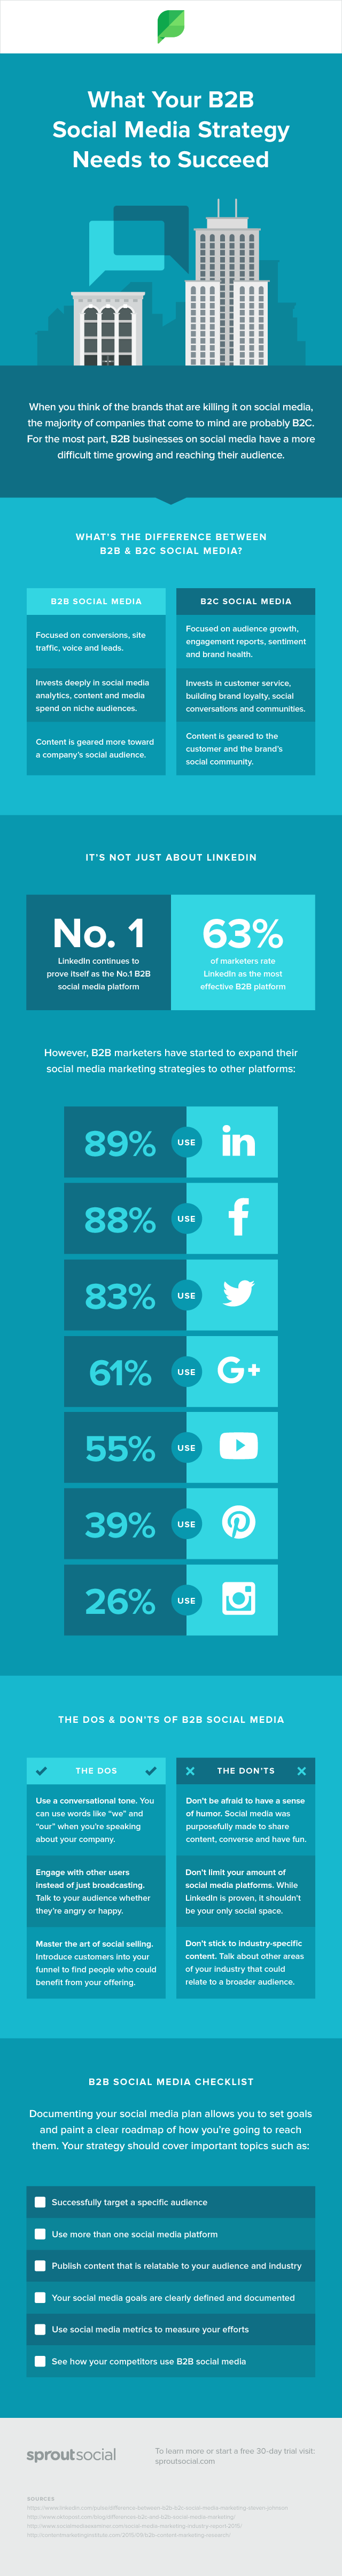 Infographic – What Your B2B Social Media Strategy Needs to Succeed